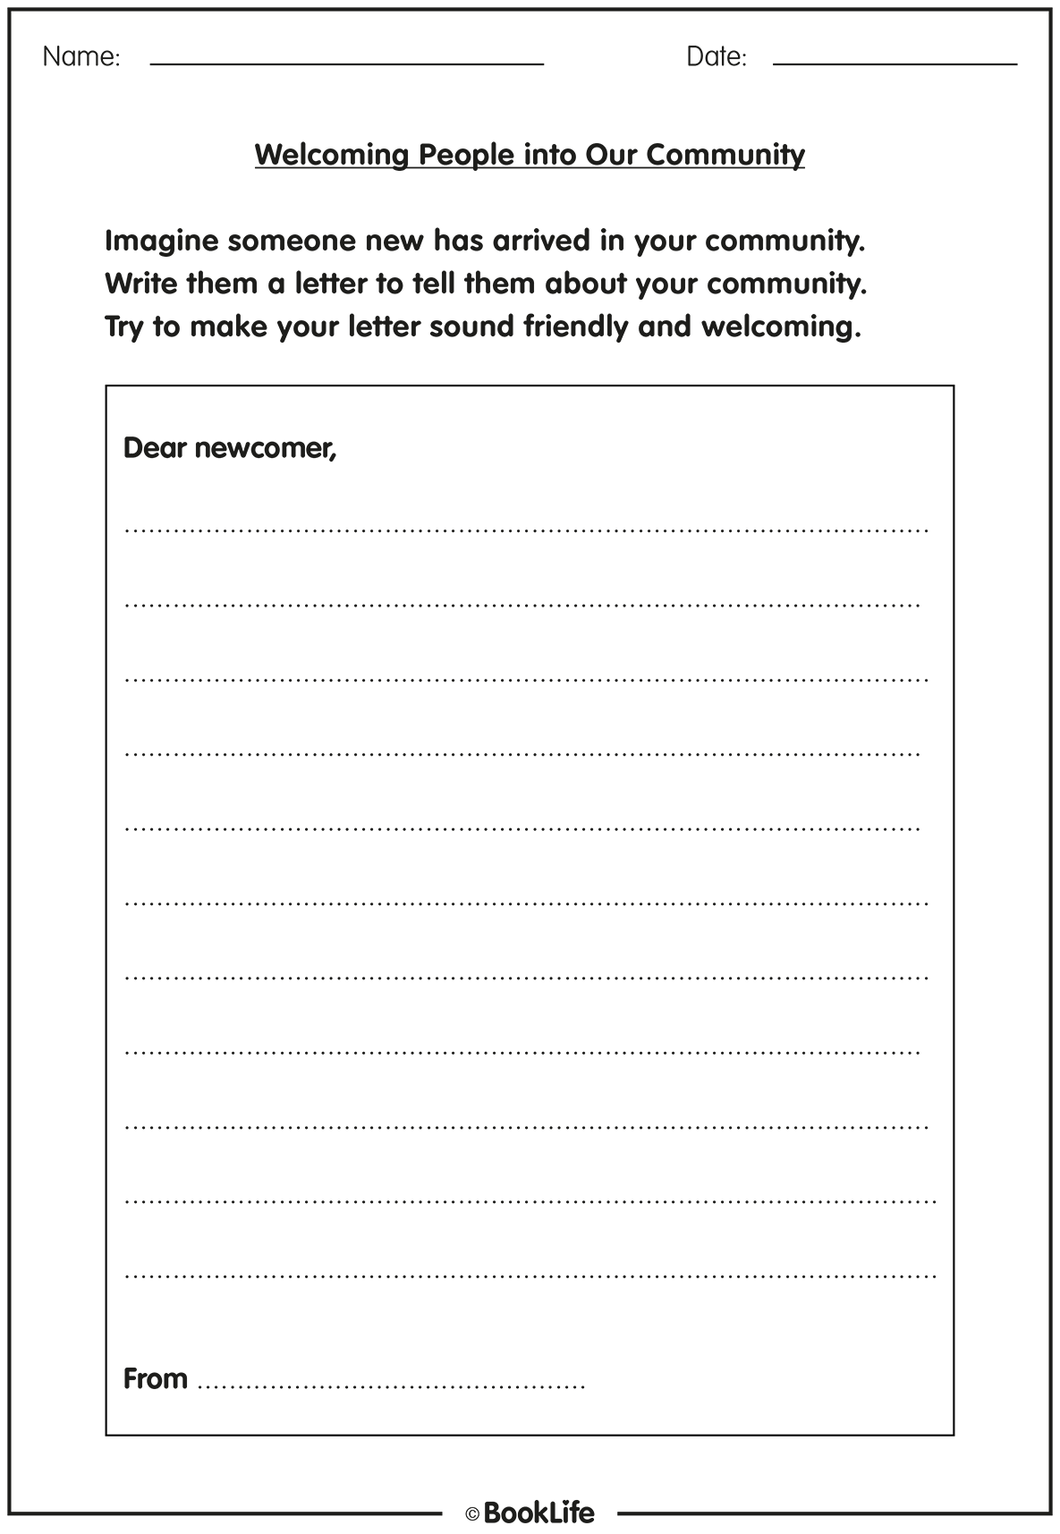 Welcome People into Our Community Activity Sheet